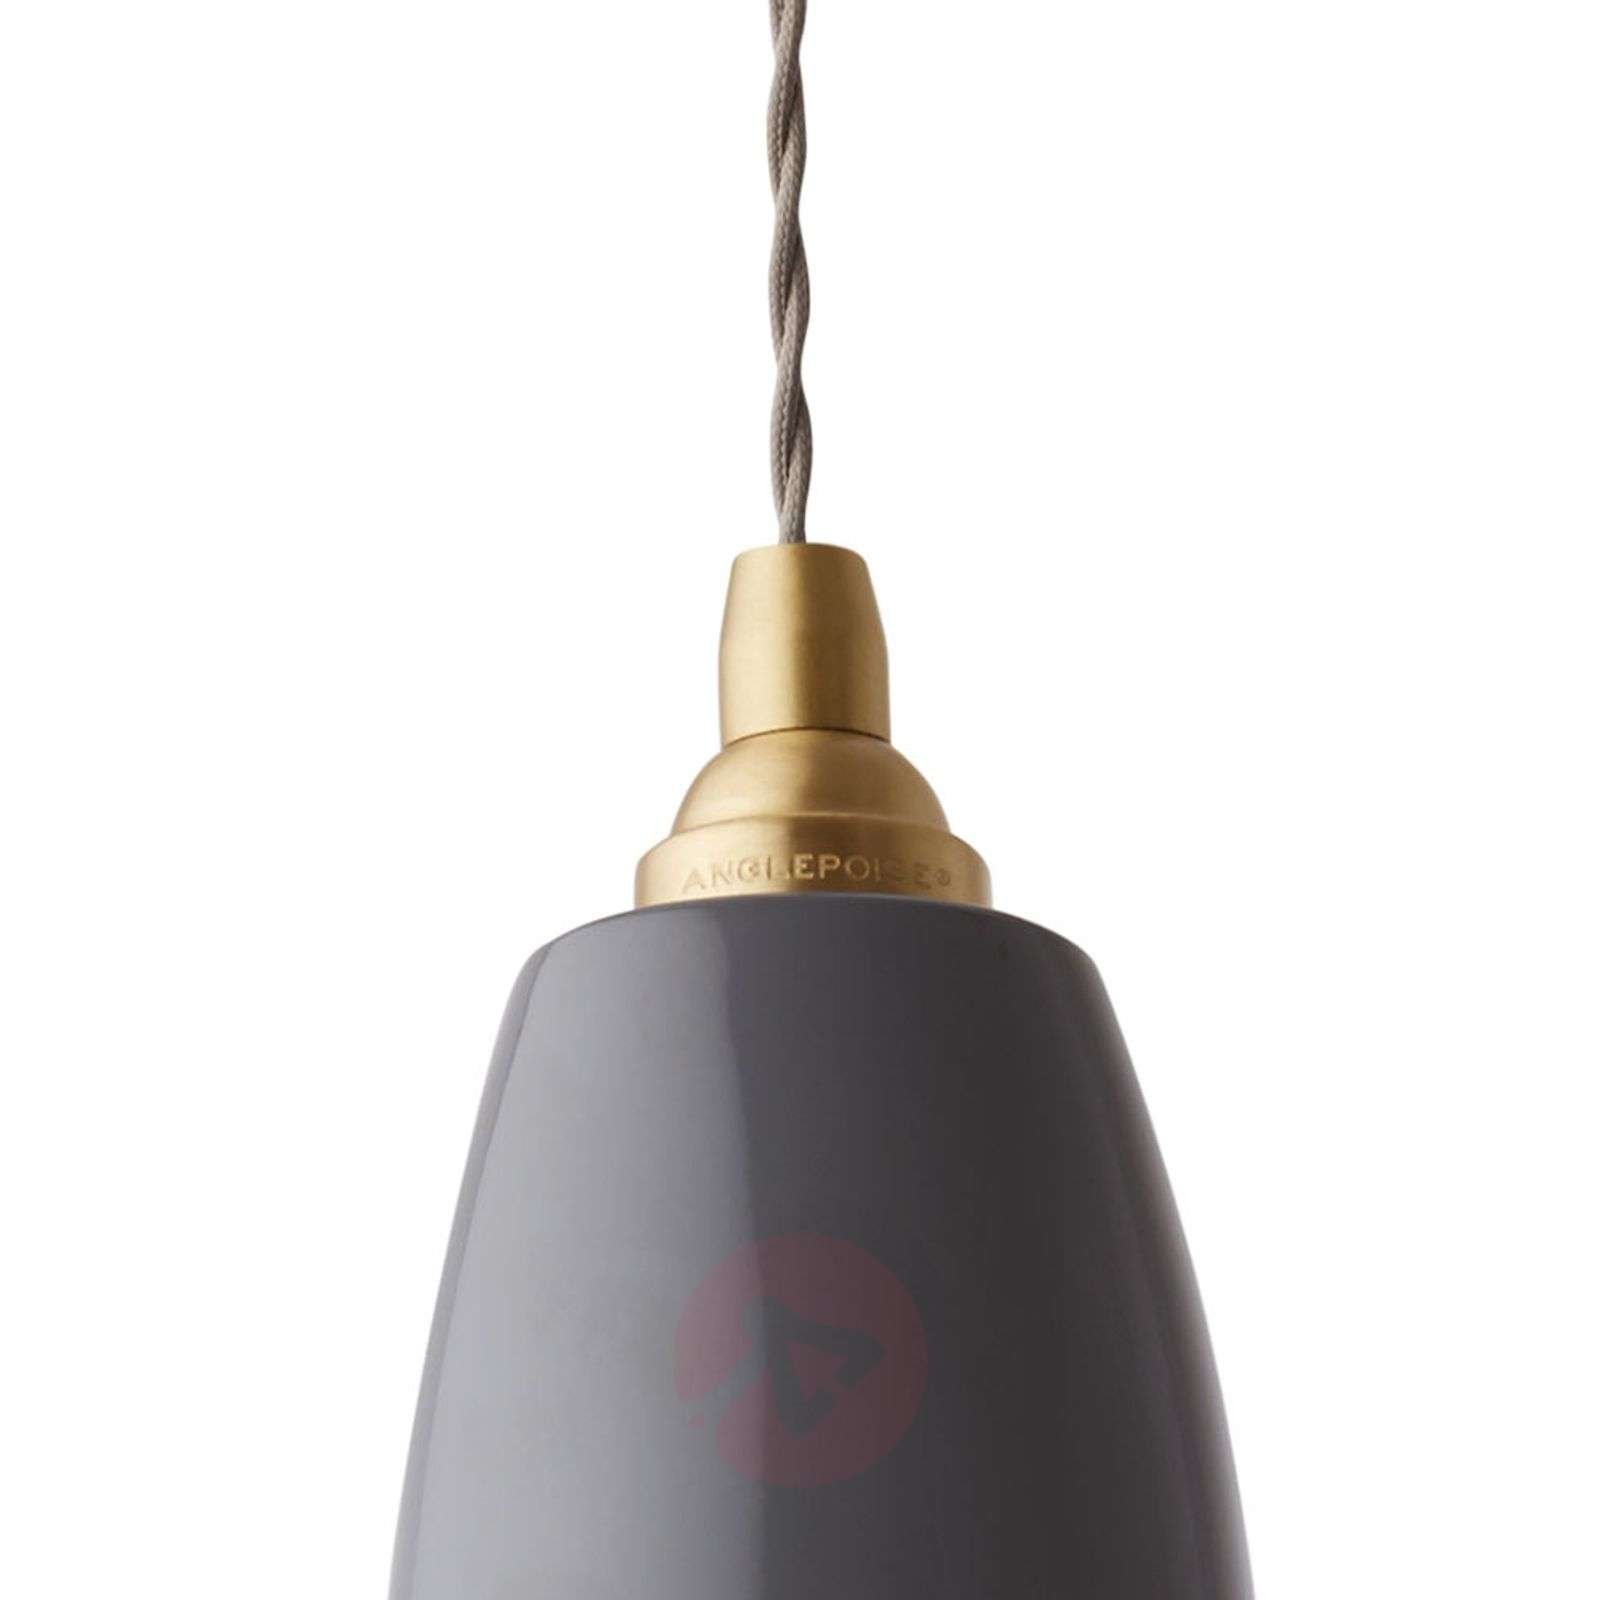 Anglepoise Original 1227 brass hanging lamp-1073082X-012